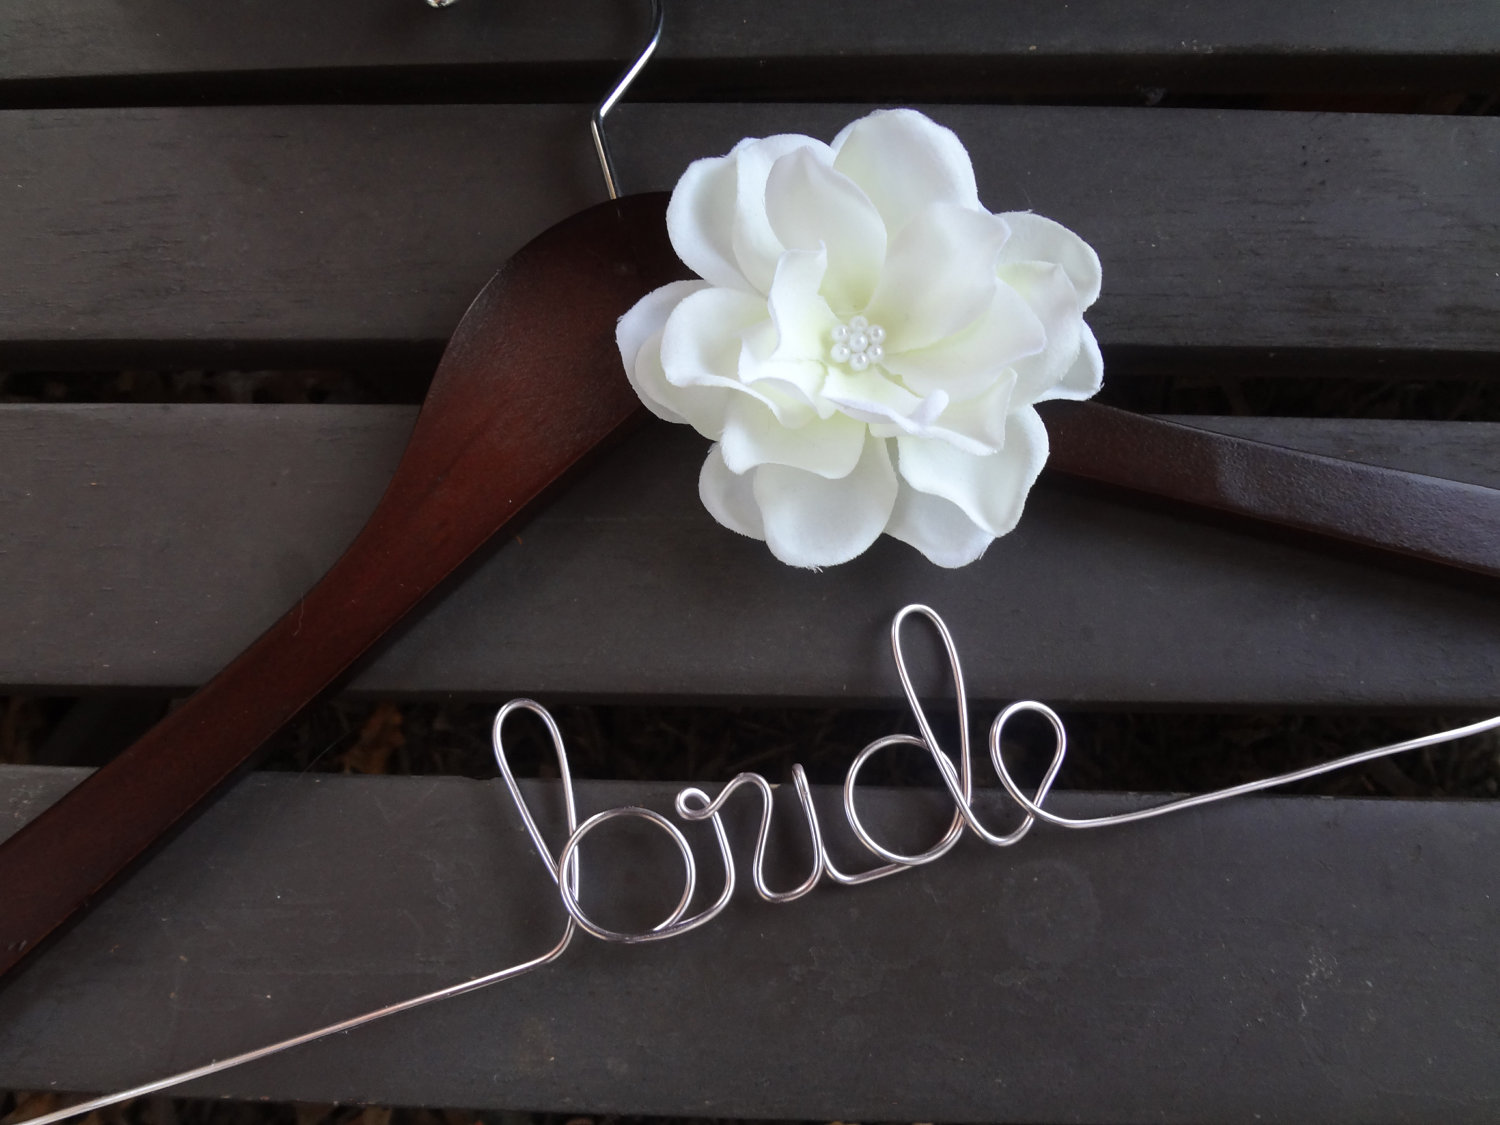 Sonal j shah event consultants llc bridal hangers for Wedding dress hangers with name